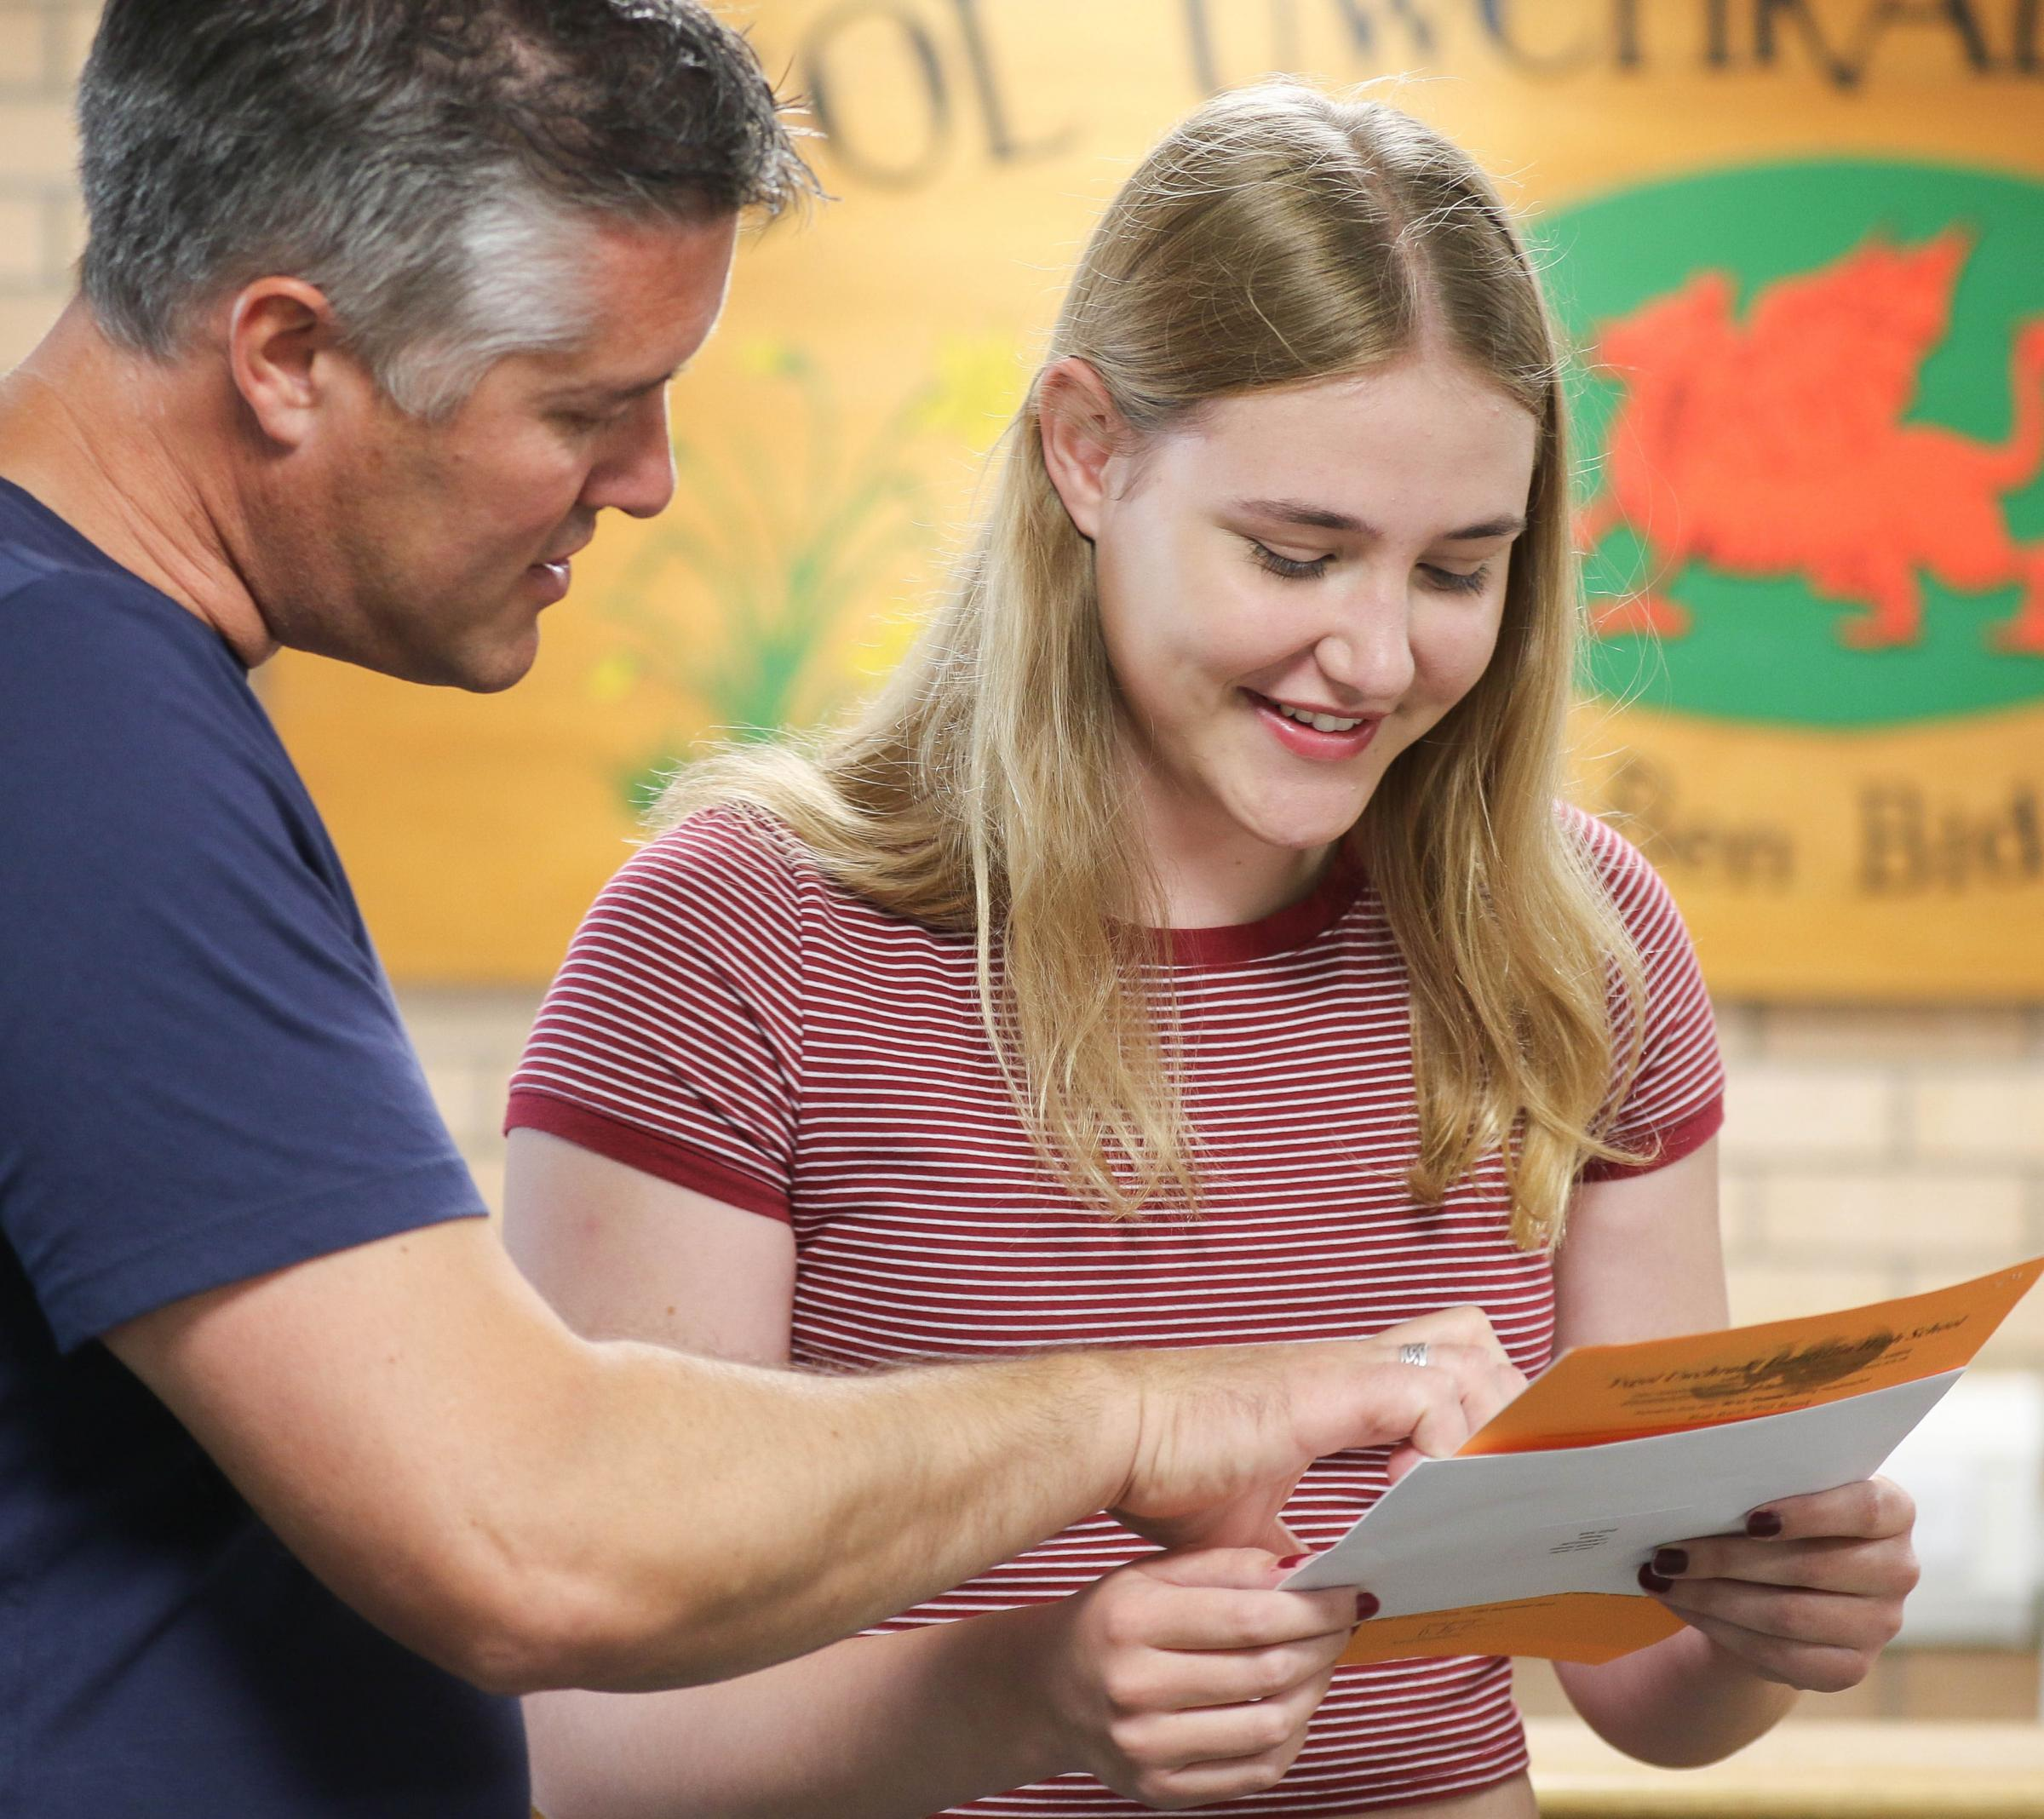 PB324-2017-7.GCSE Results day at Llanfyllin High School.pictured is Leah Jacks with 3 x A*'S, 3 x A's and 1 x B's).Picture by Phil Blagg.PB324-2017-7.